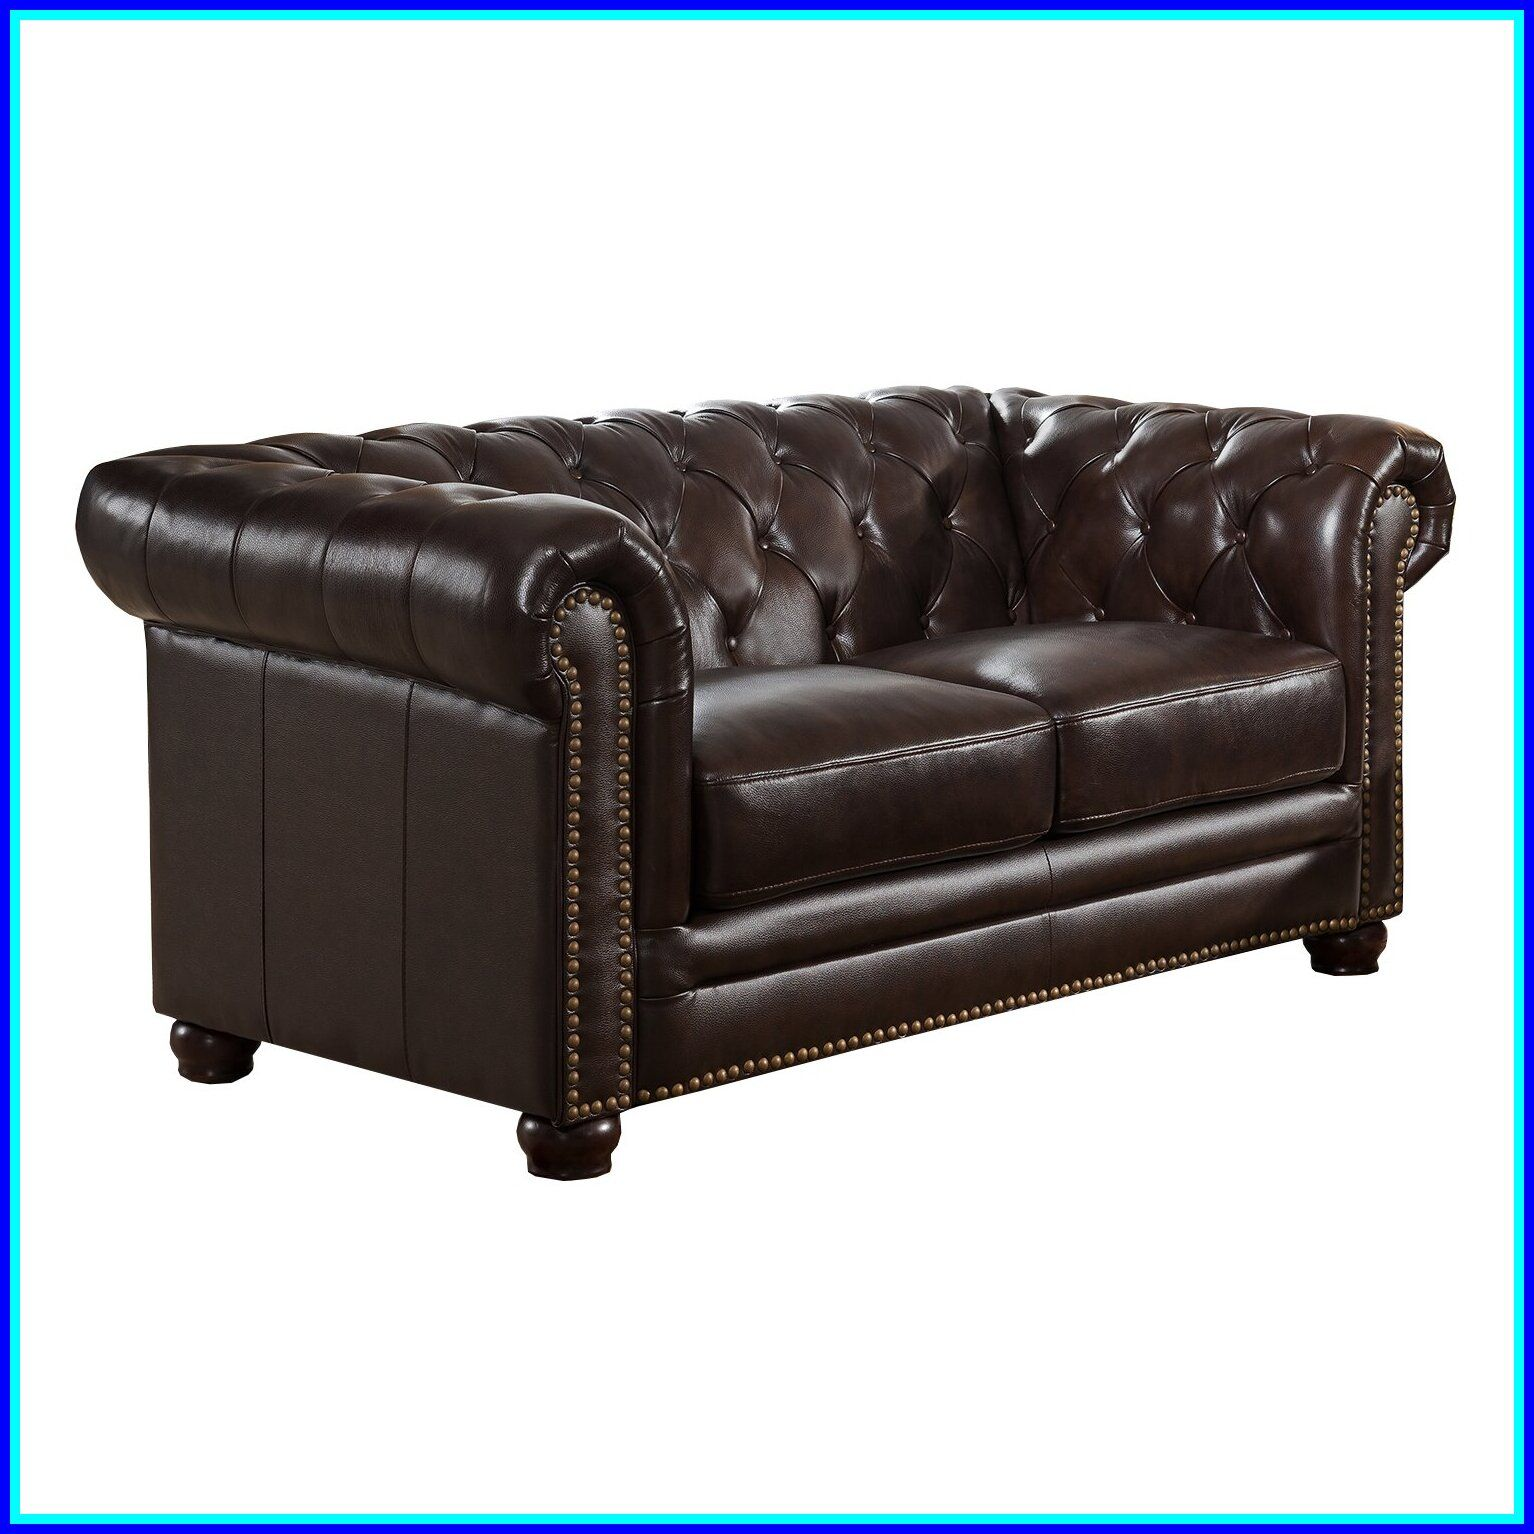 97 reference of leather chesterfield couch jhb in 2020